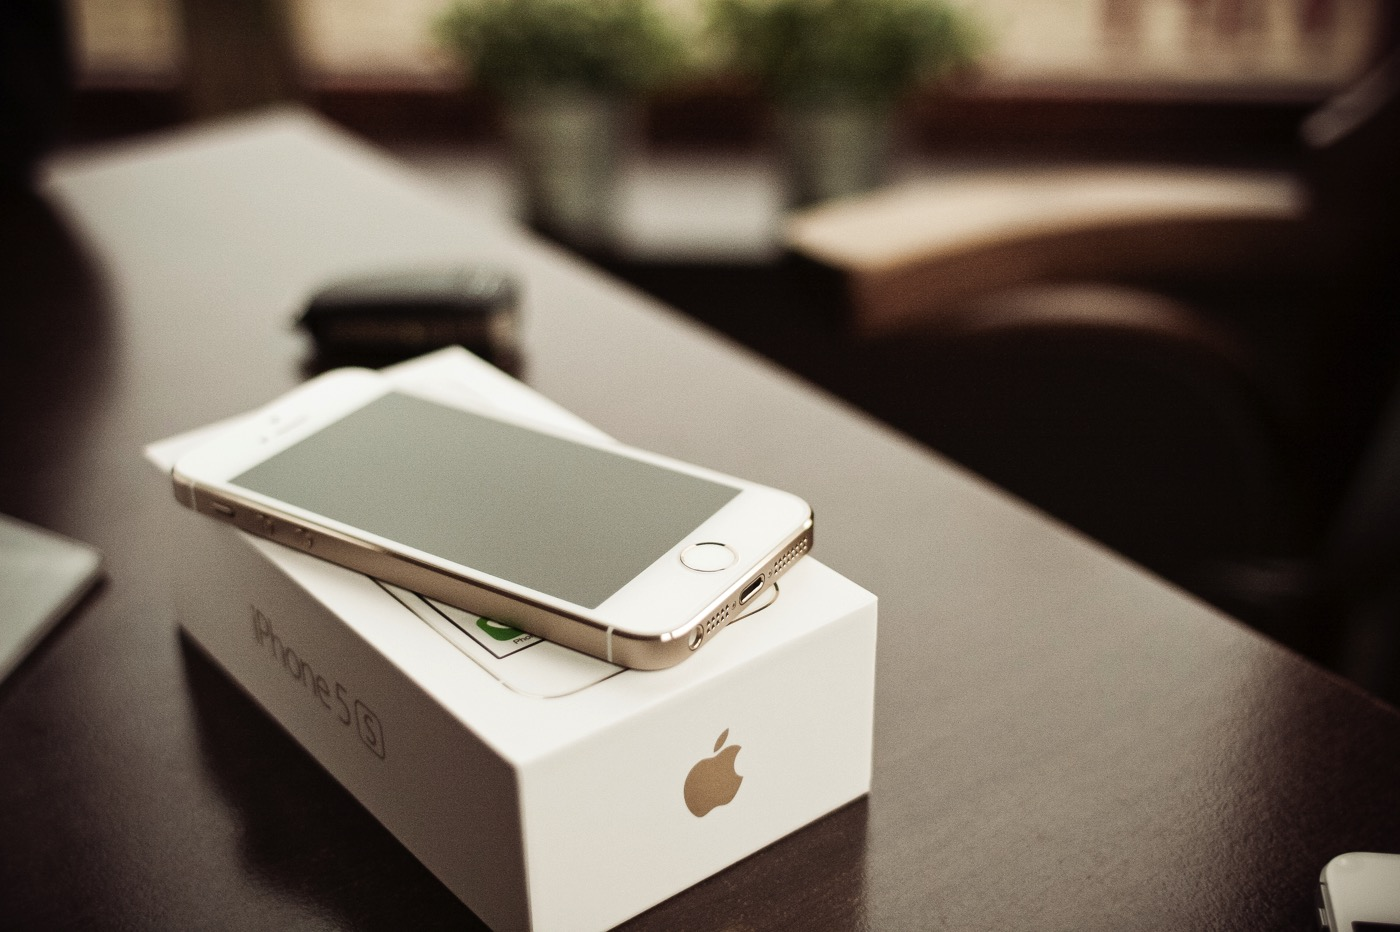 Iphone 5s gold with a box picjumbo com